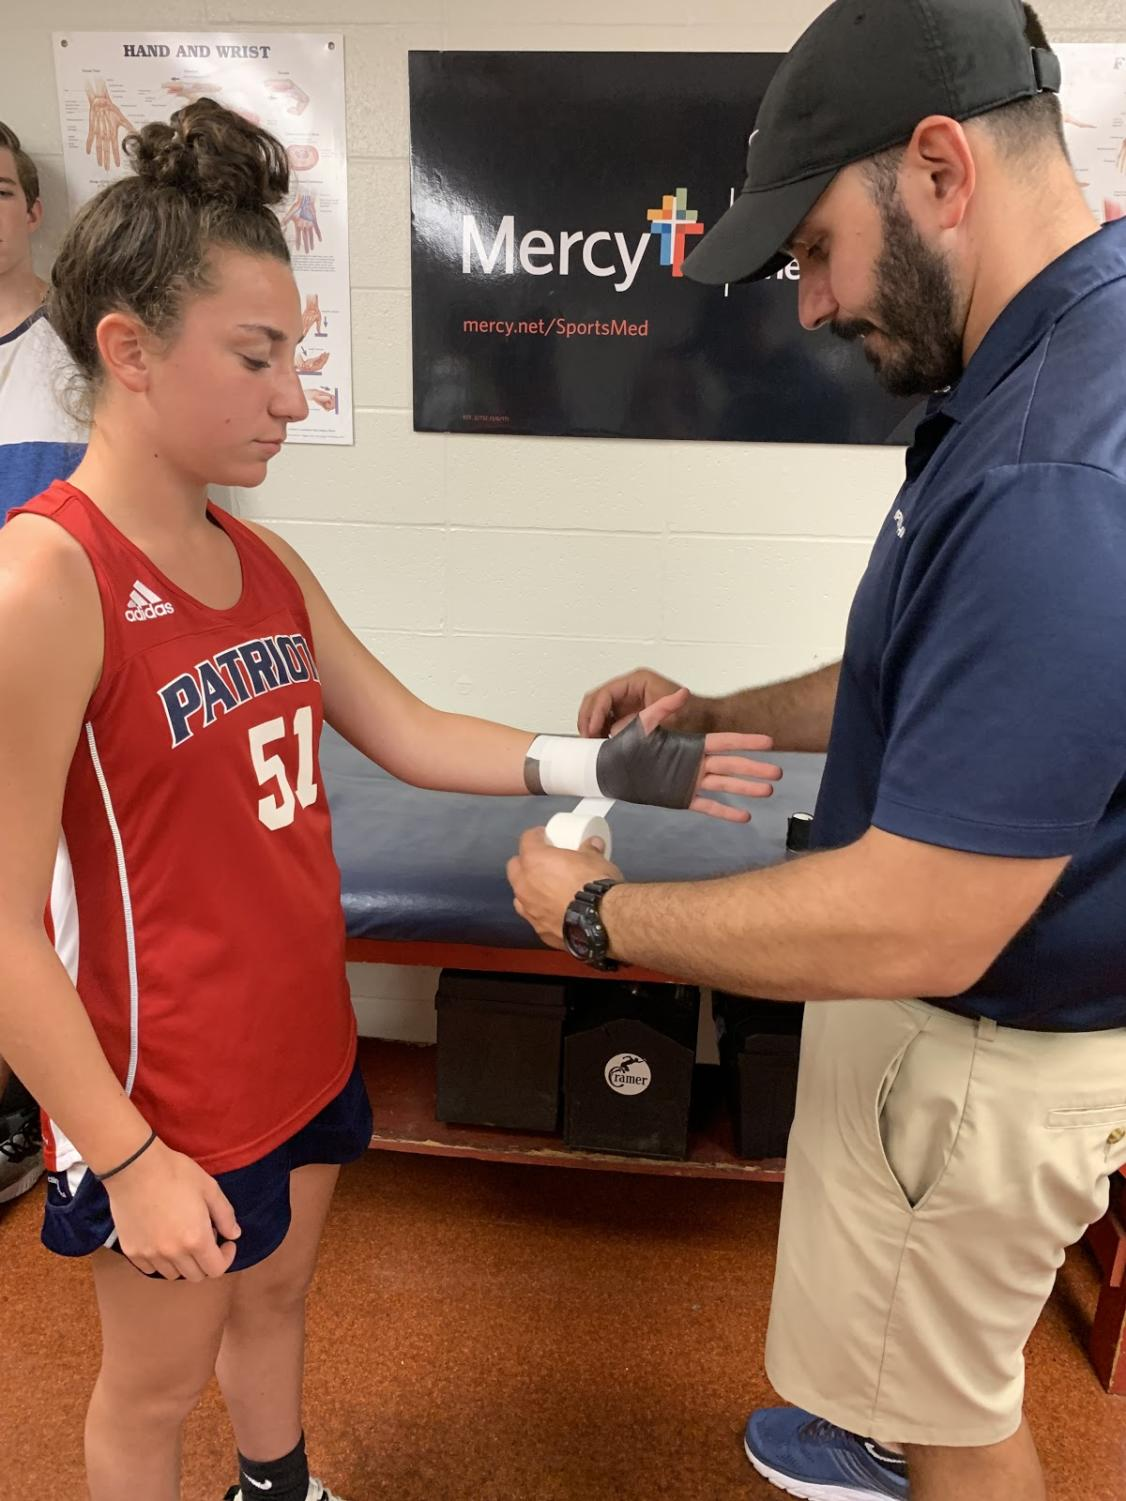 Trainer Mike Tzianos wraps the wrist of field hockey player Sophie Beckemeyer before a game.